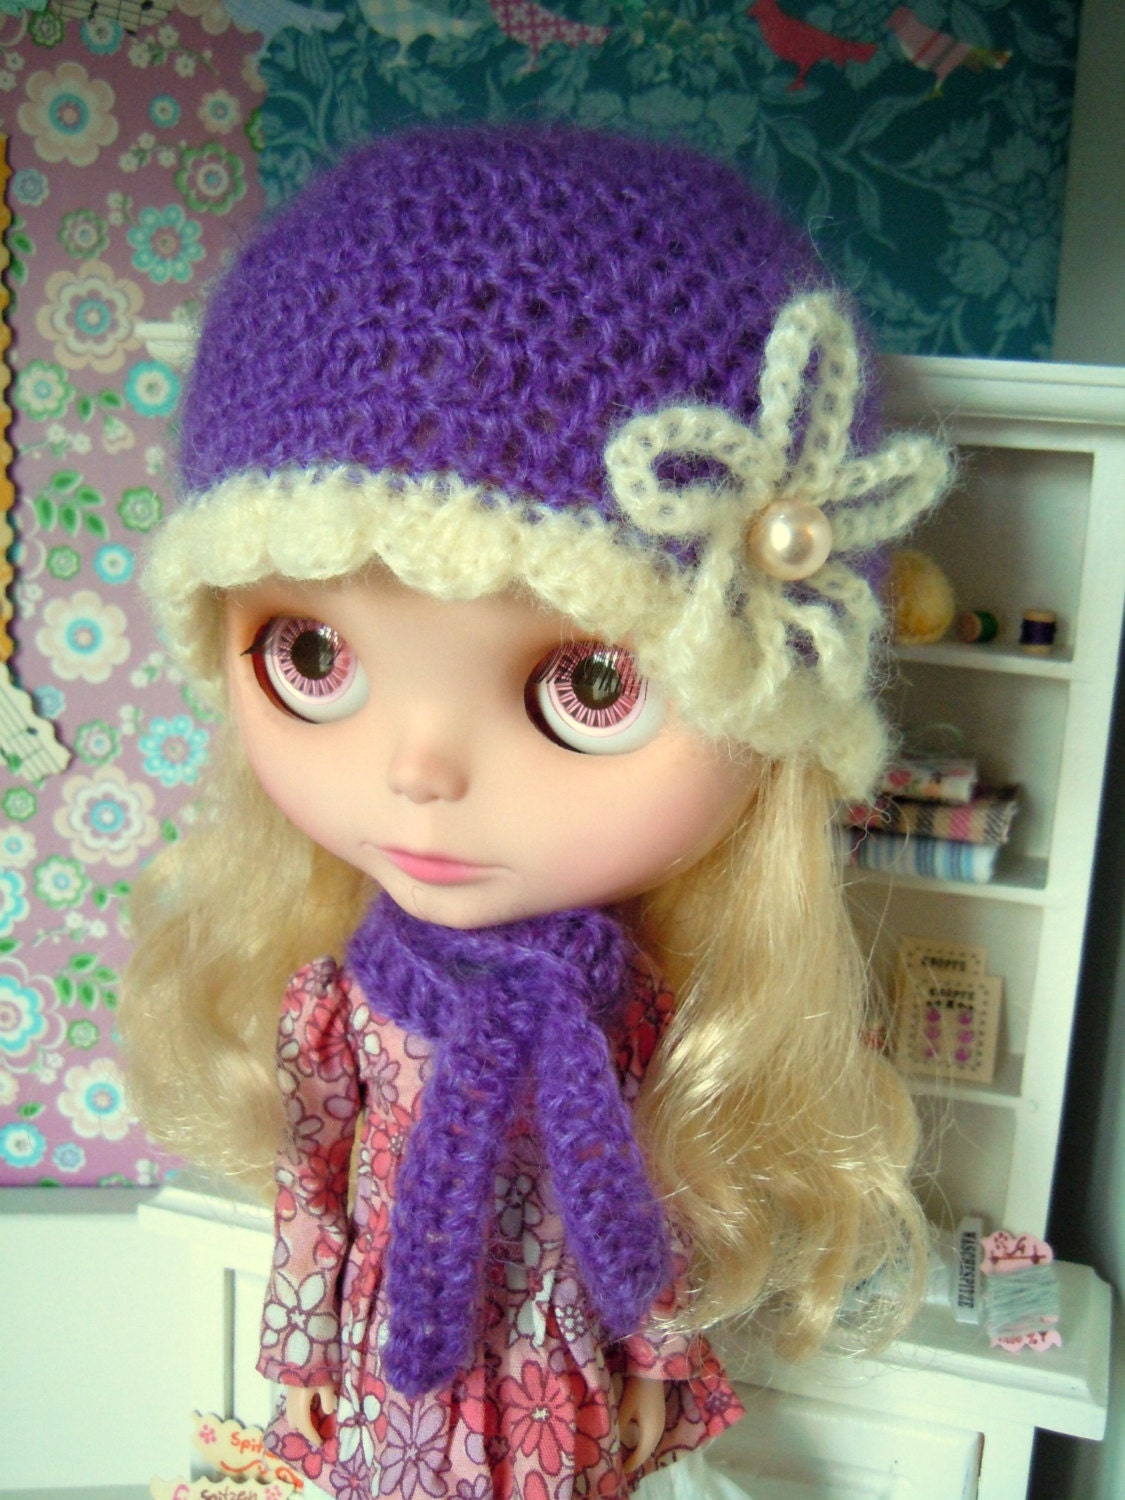 SALE PRICE Crochet hat and scarf for Blythe doll by Herzlichkeiten Crochet Scarves For Sale